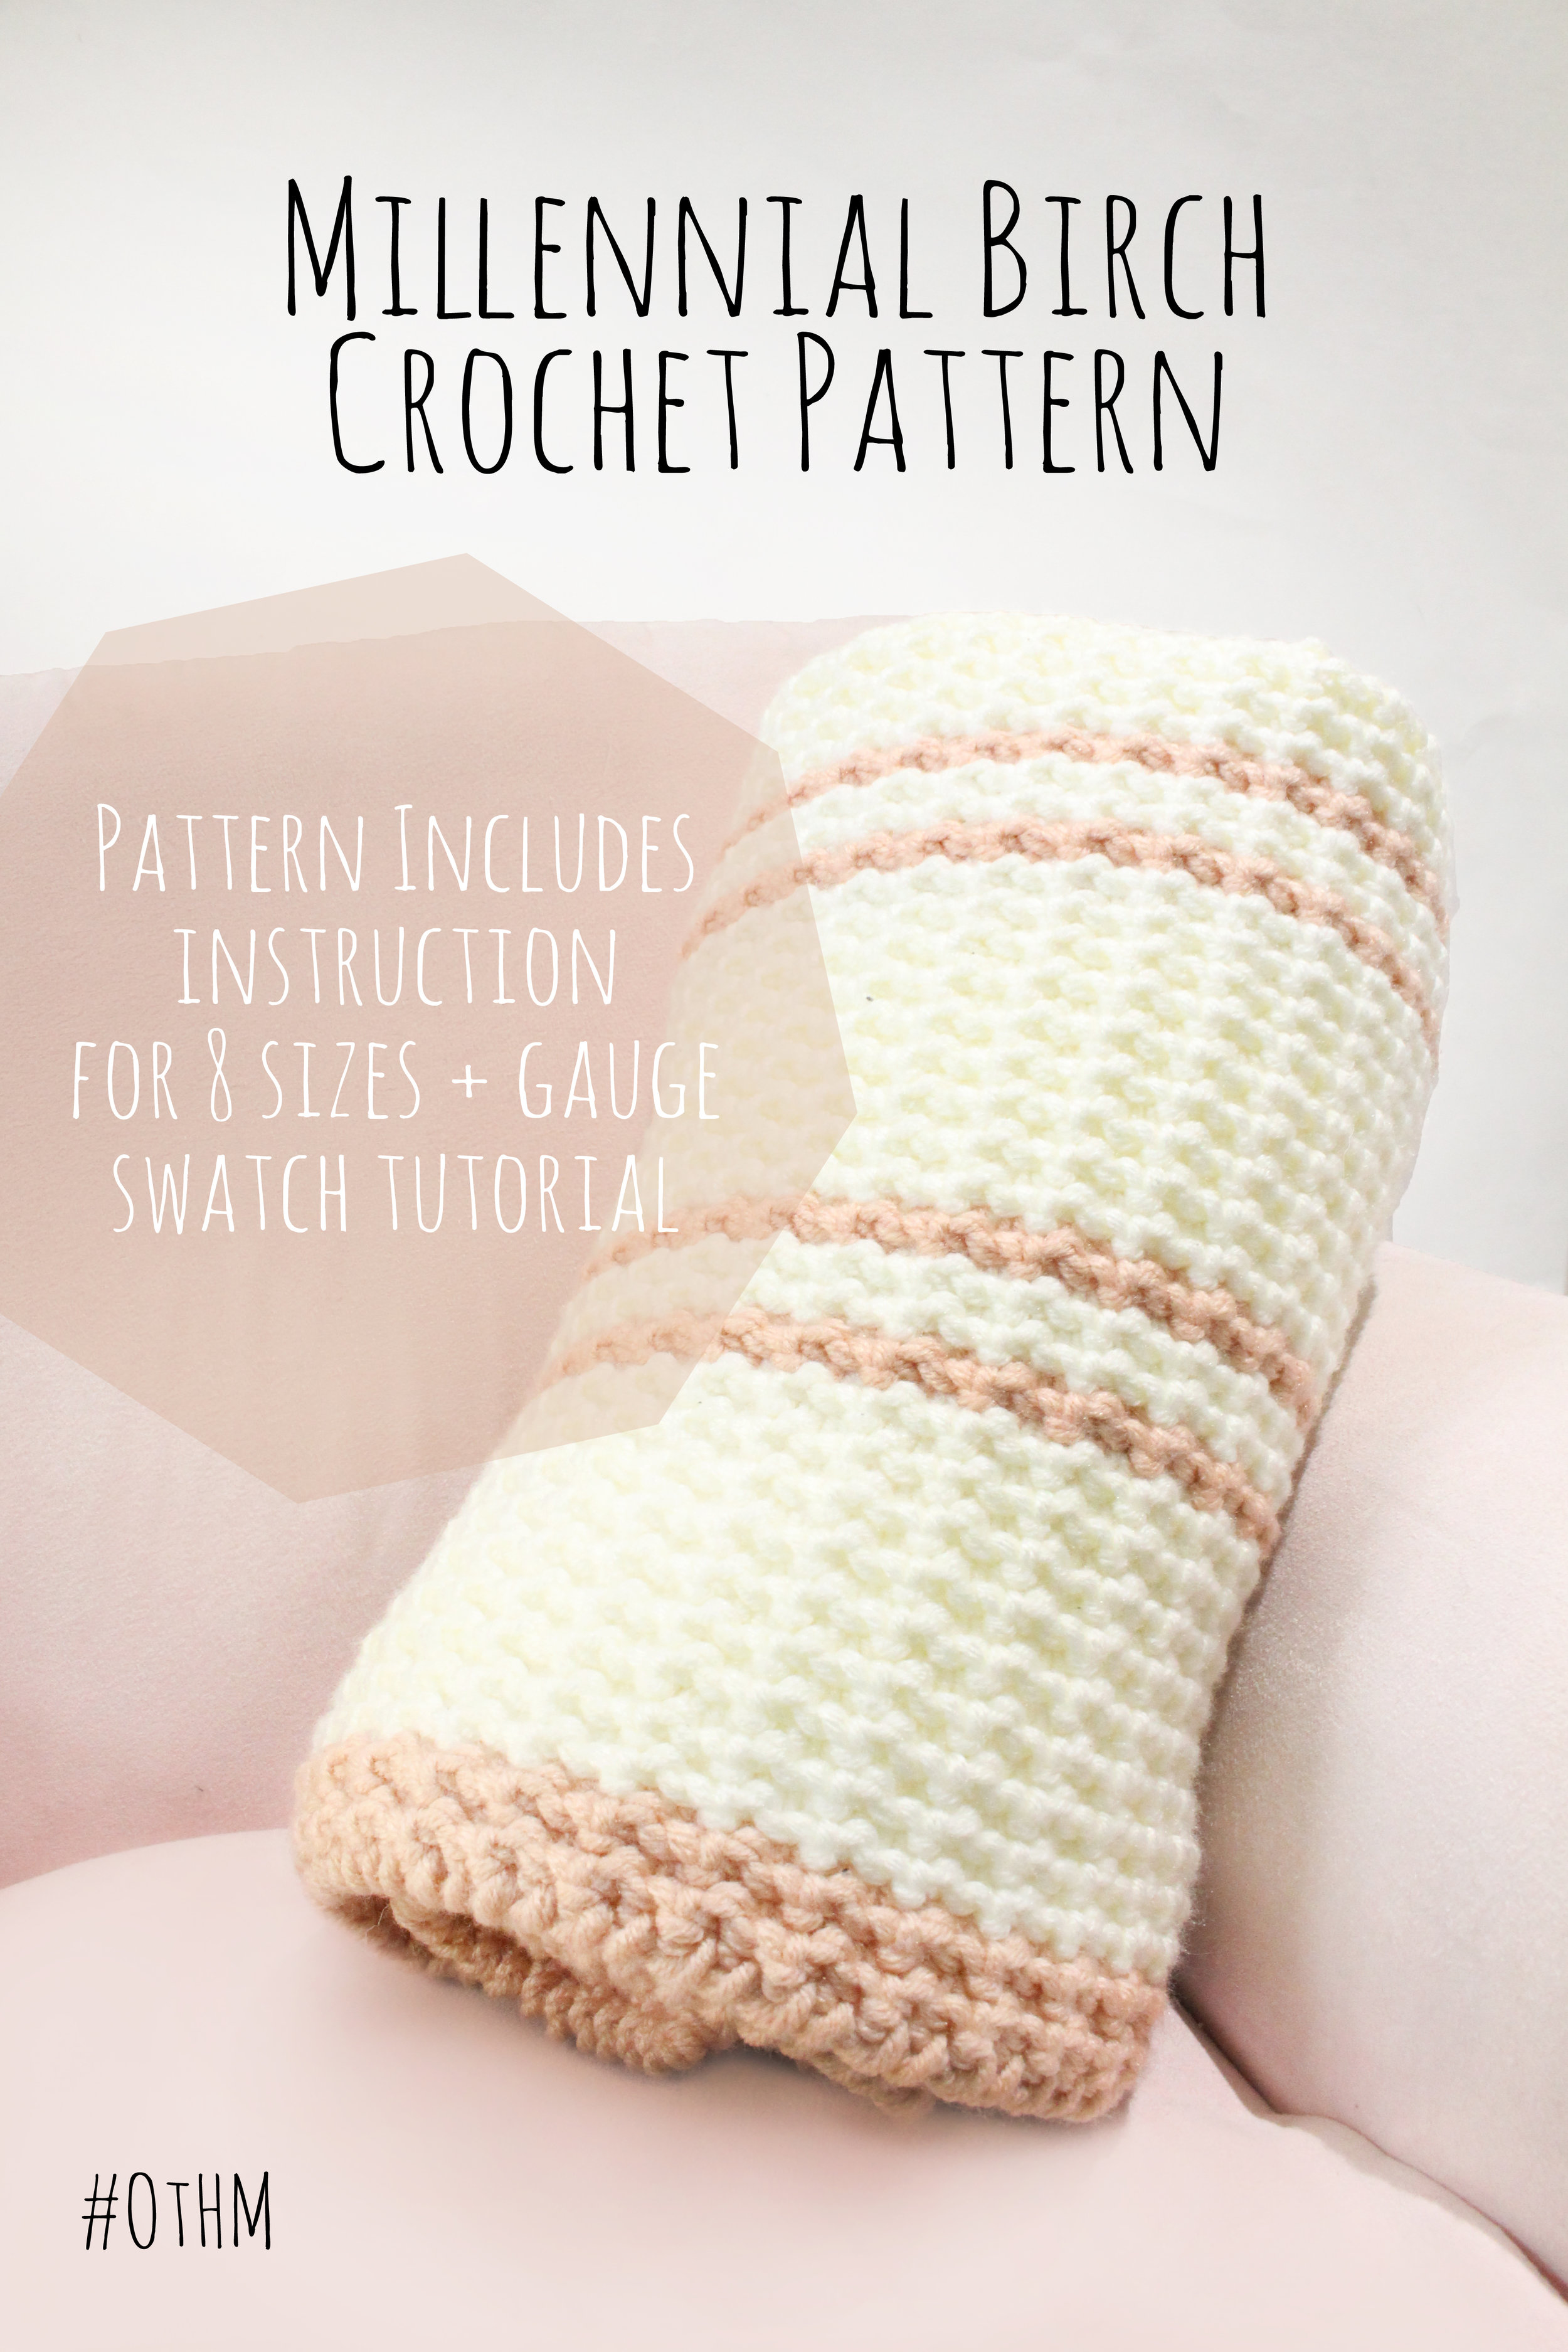 Click the photo to shop the pattern on Etsy!